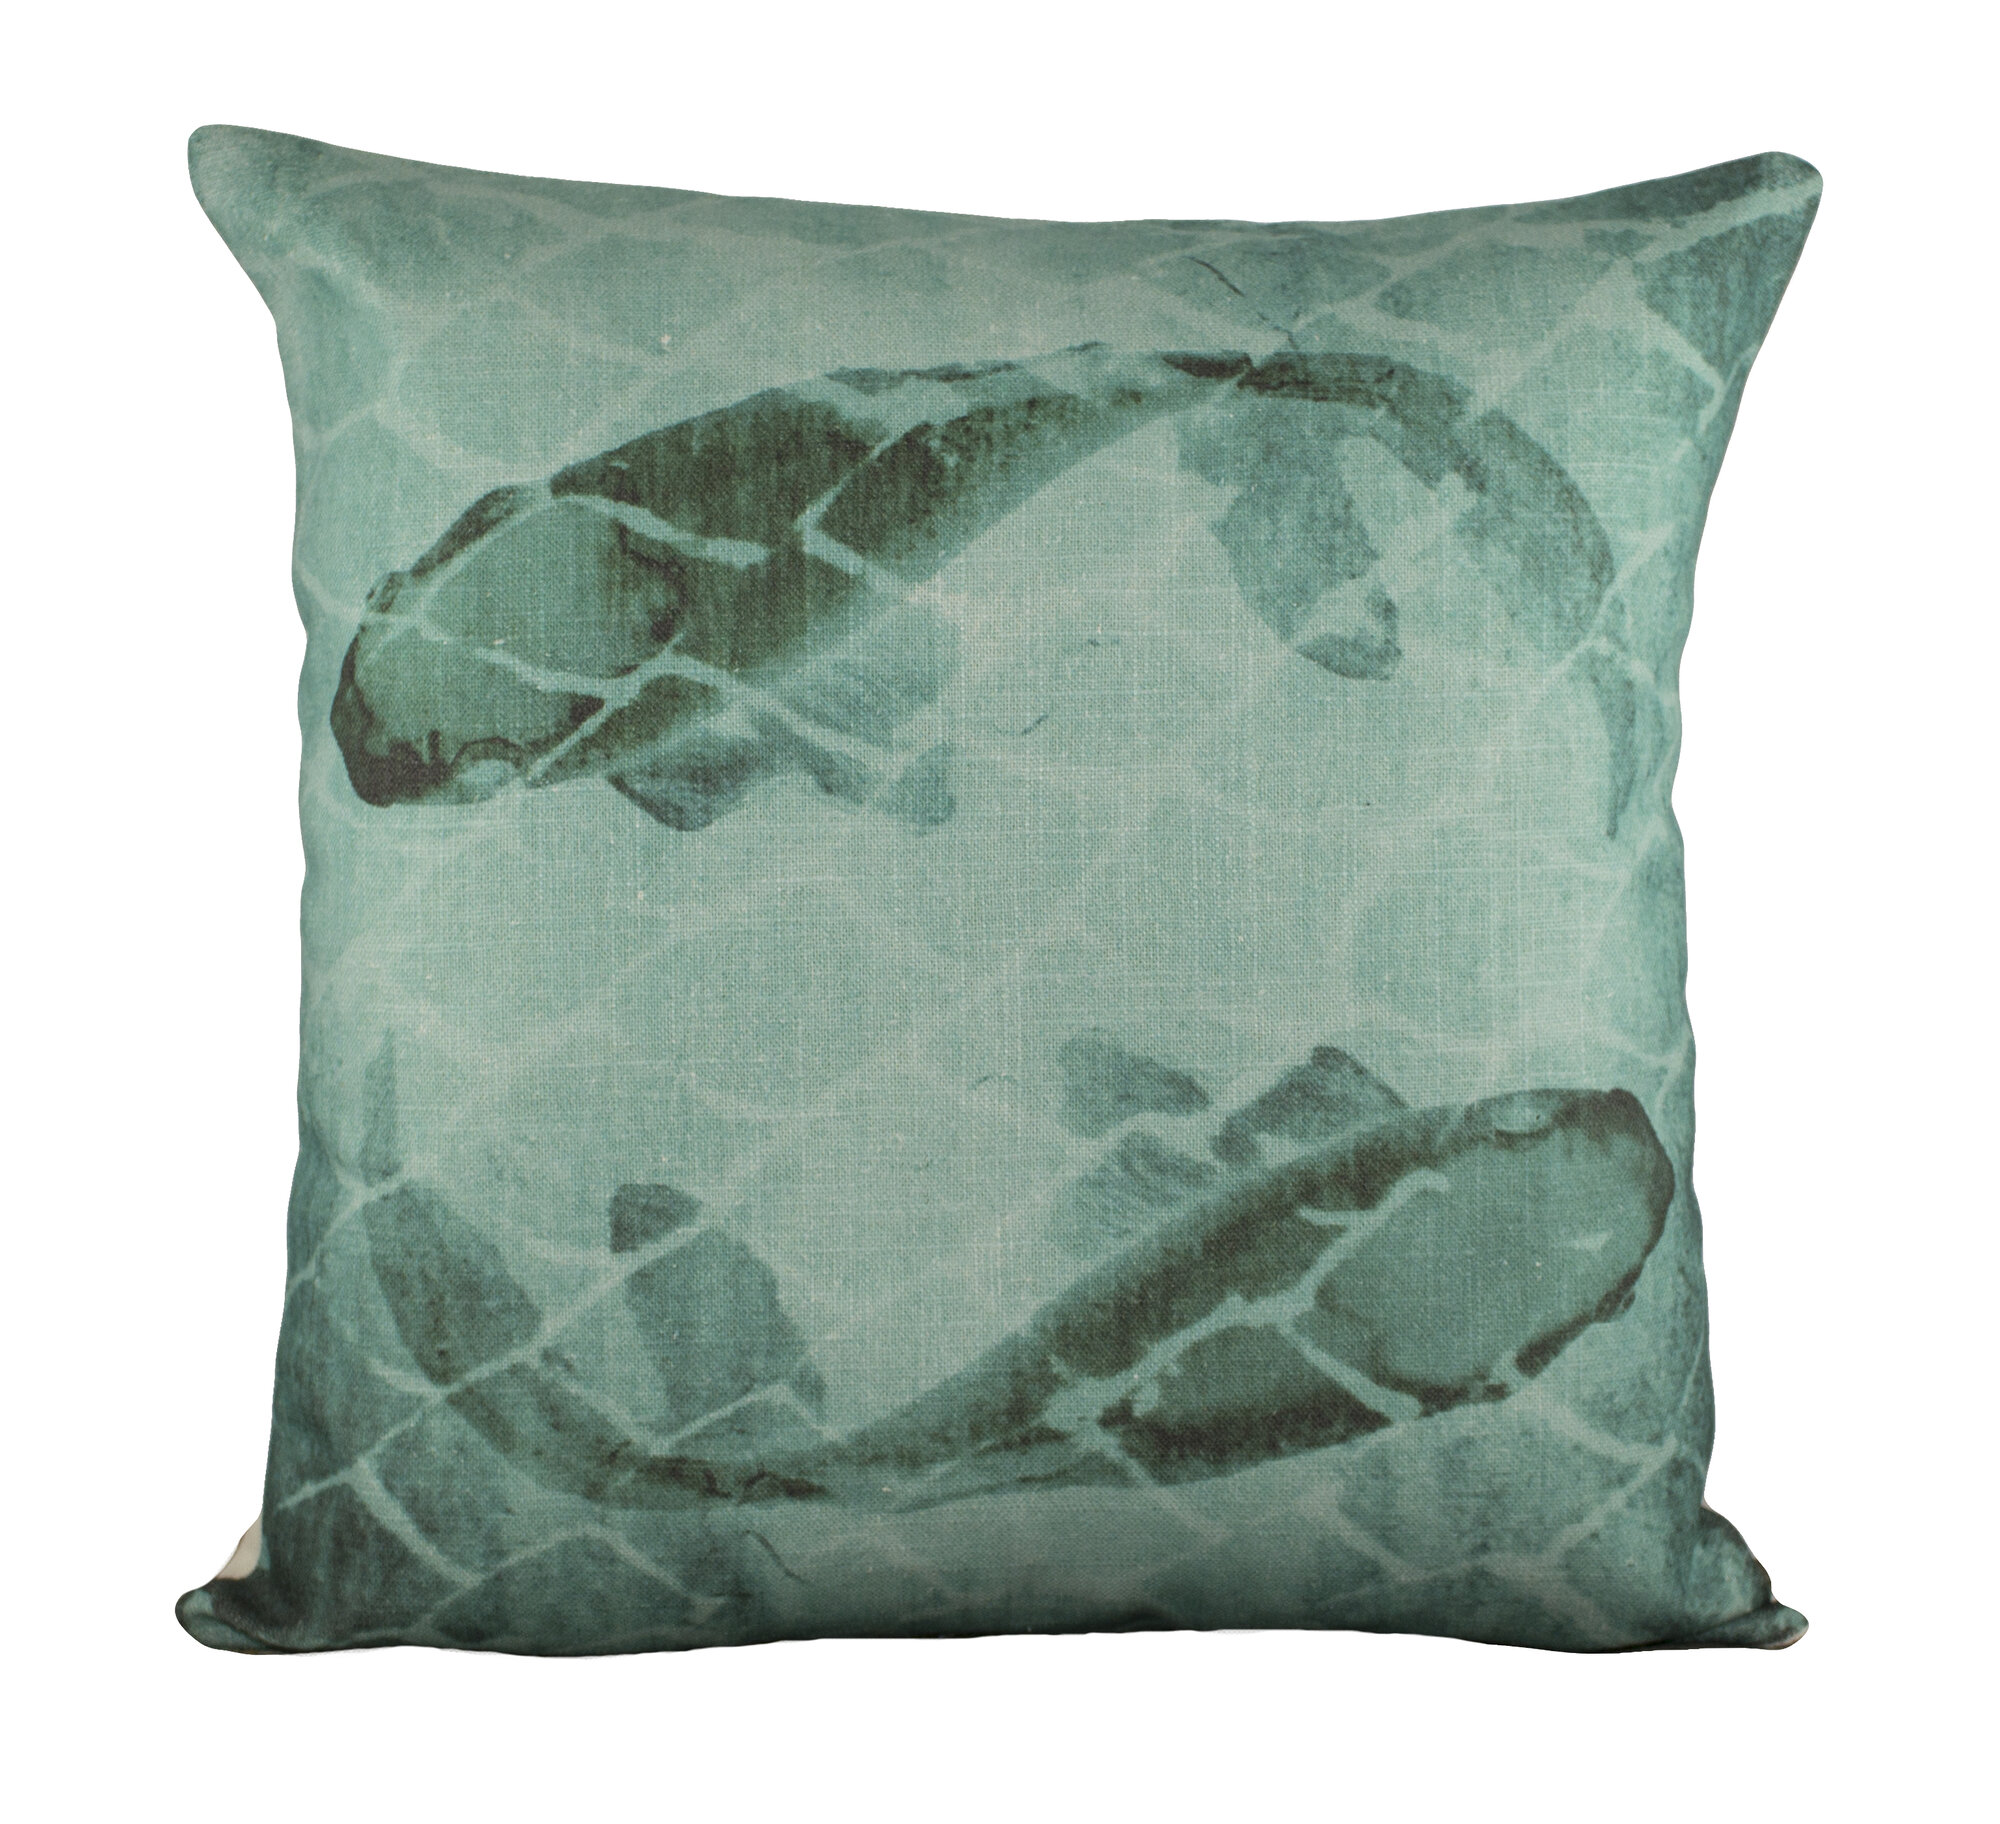 Thewatsonshop fish cotton throw pillow wtsn3137 ebay for Fish shaped pillow